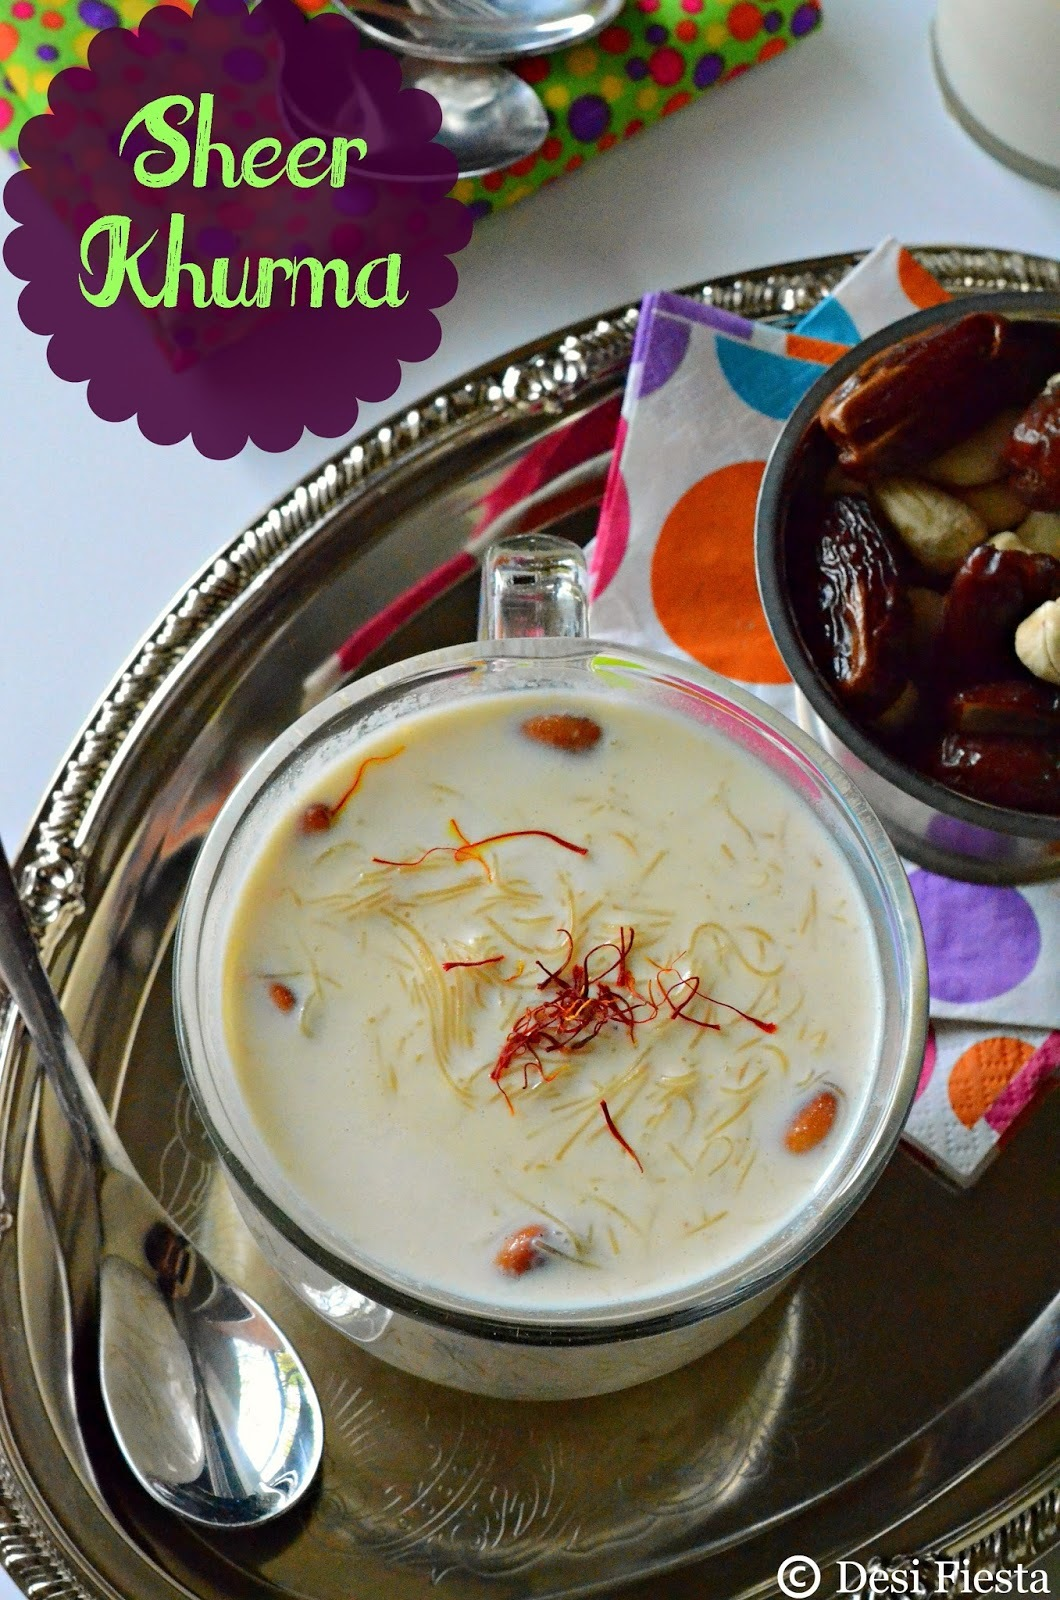 Sheer Khurma Recipe |Sheer Korma|How To Make Sheer Khurma ?| Vermicelli Pudding Recipe